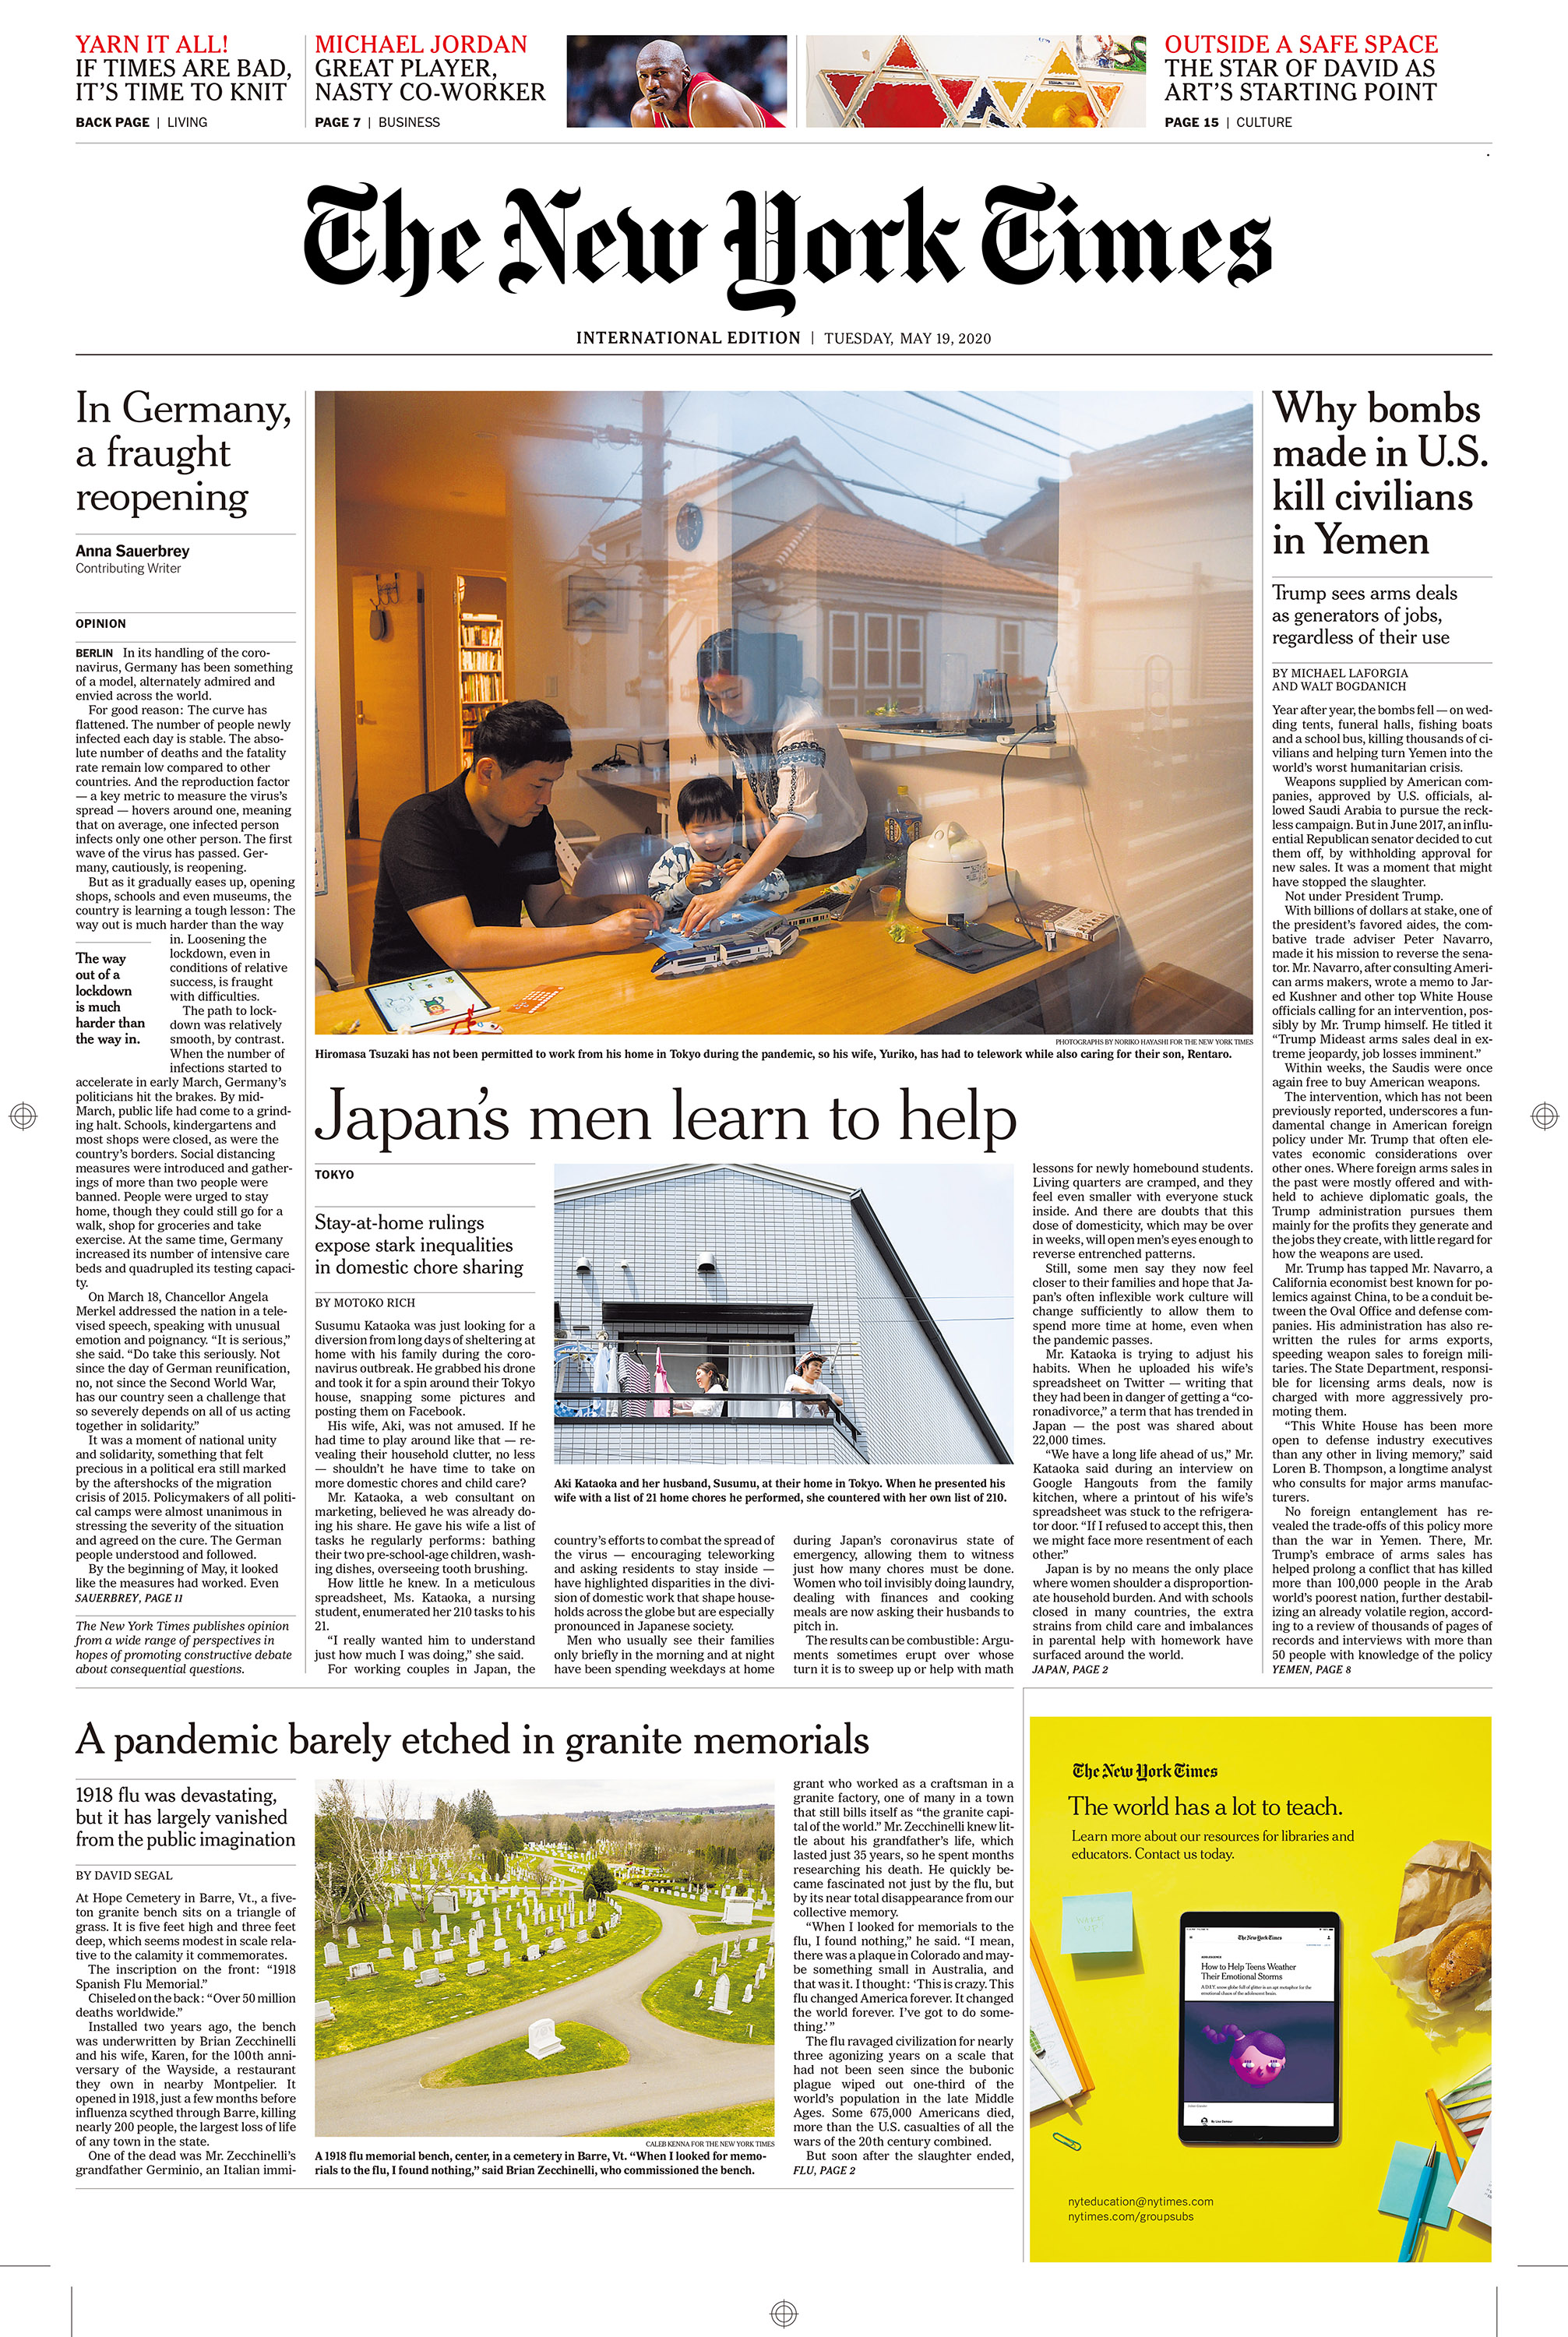 NYT#INYT#05-19-2020#JapanPlus#1#FrontPage#1#205989